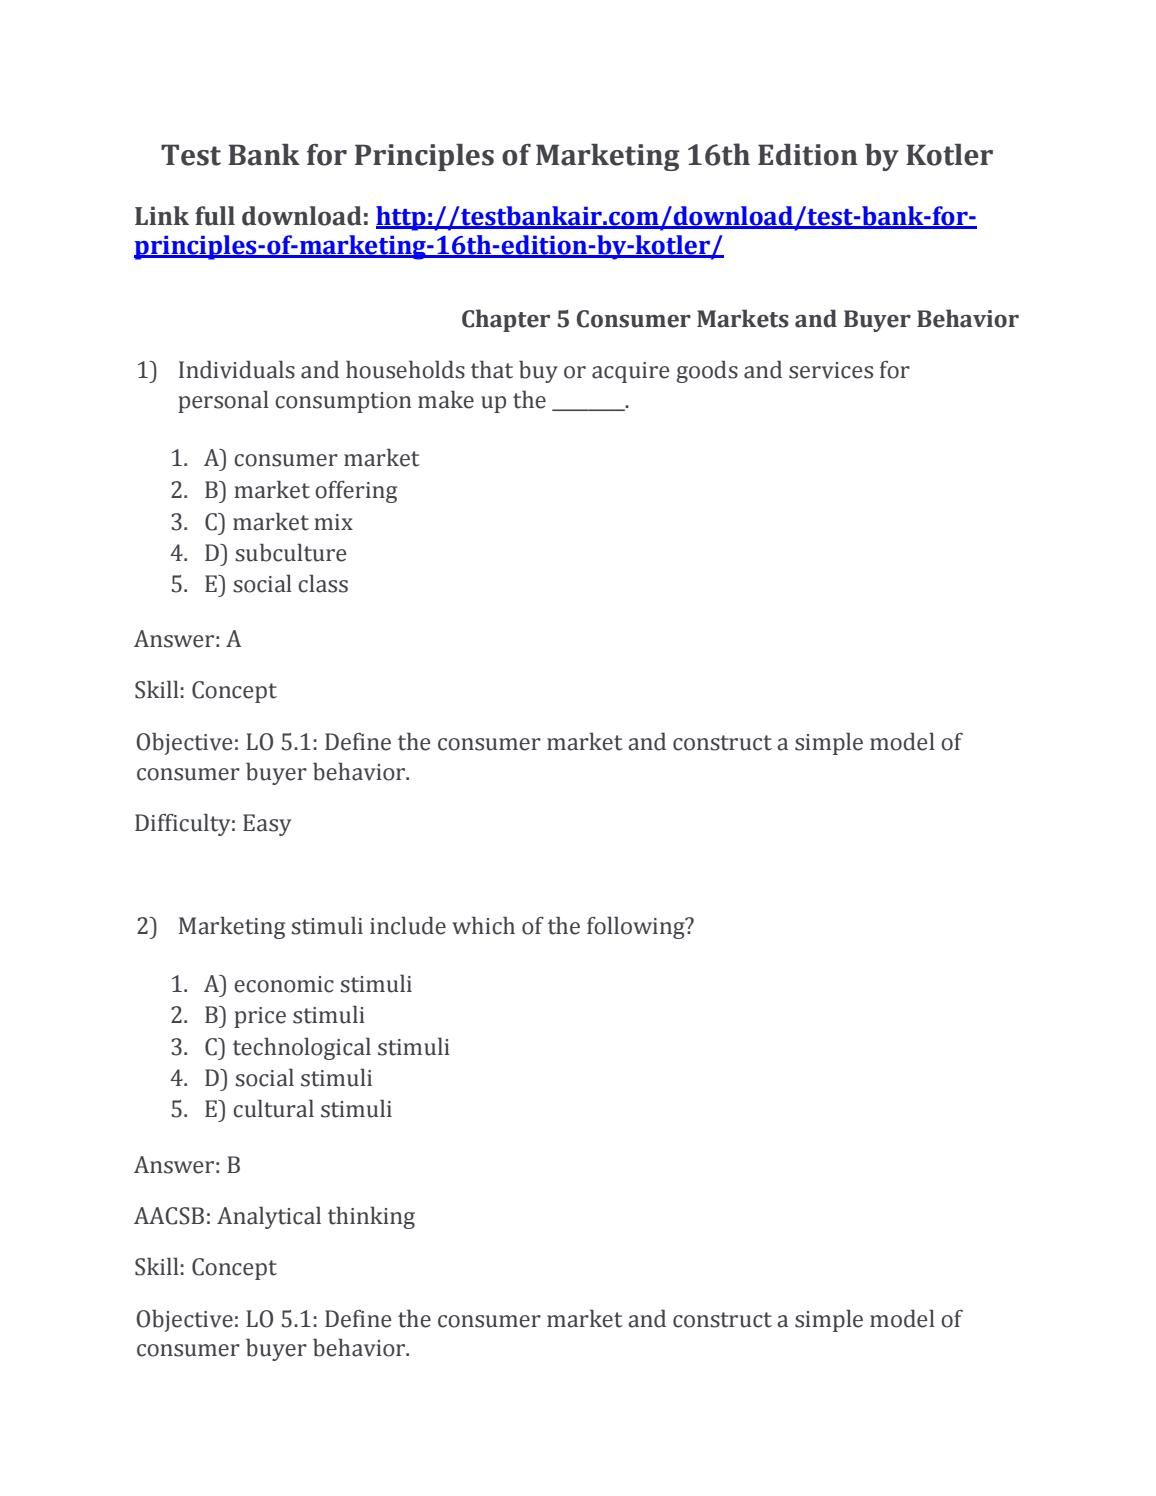 Download test bank for principles of marketing 16th edition by kotler